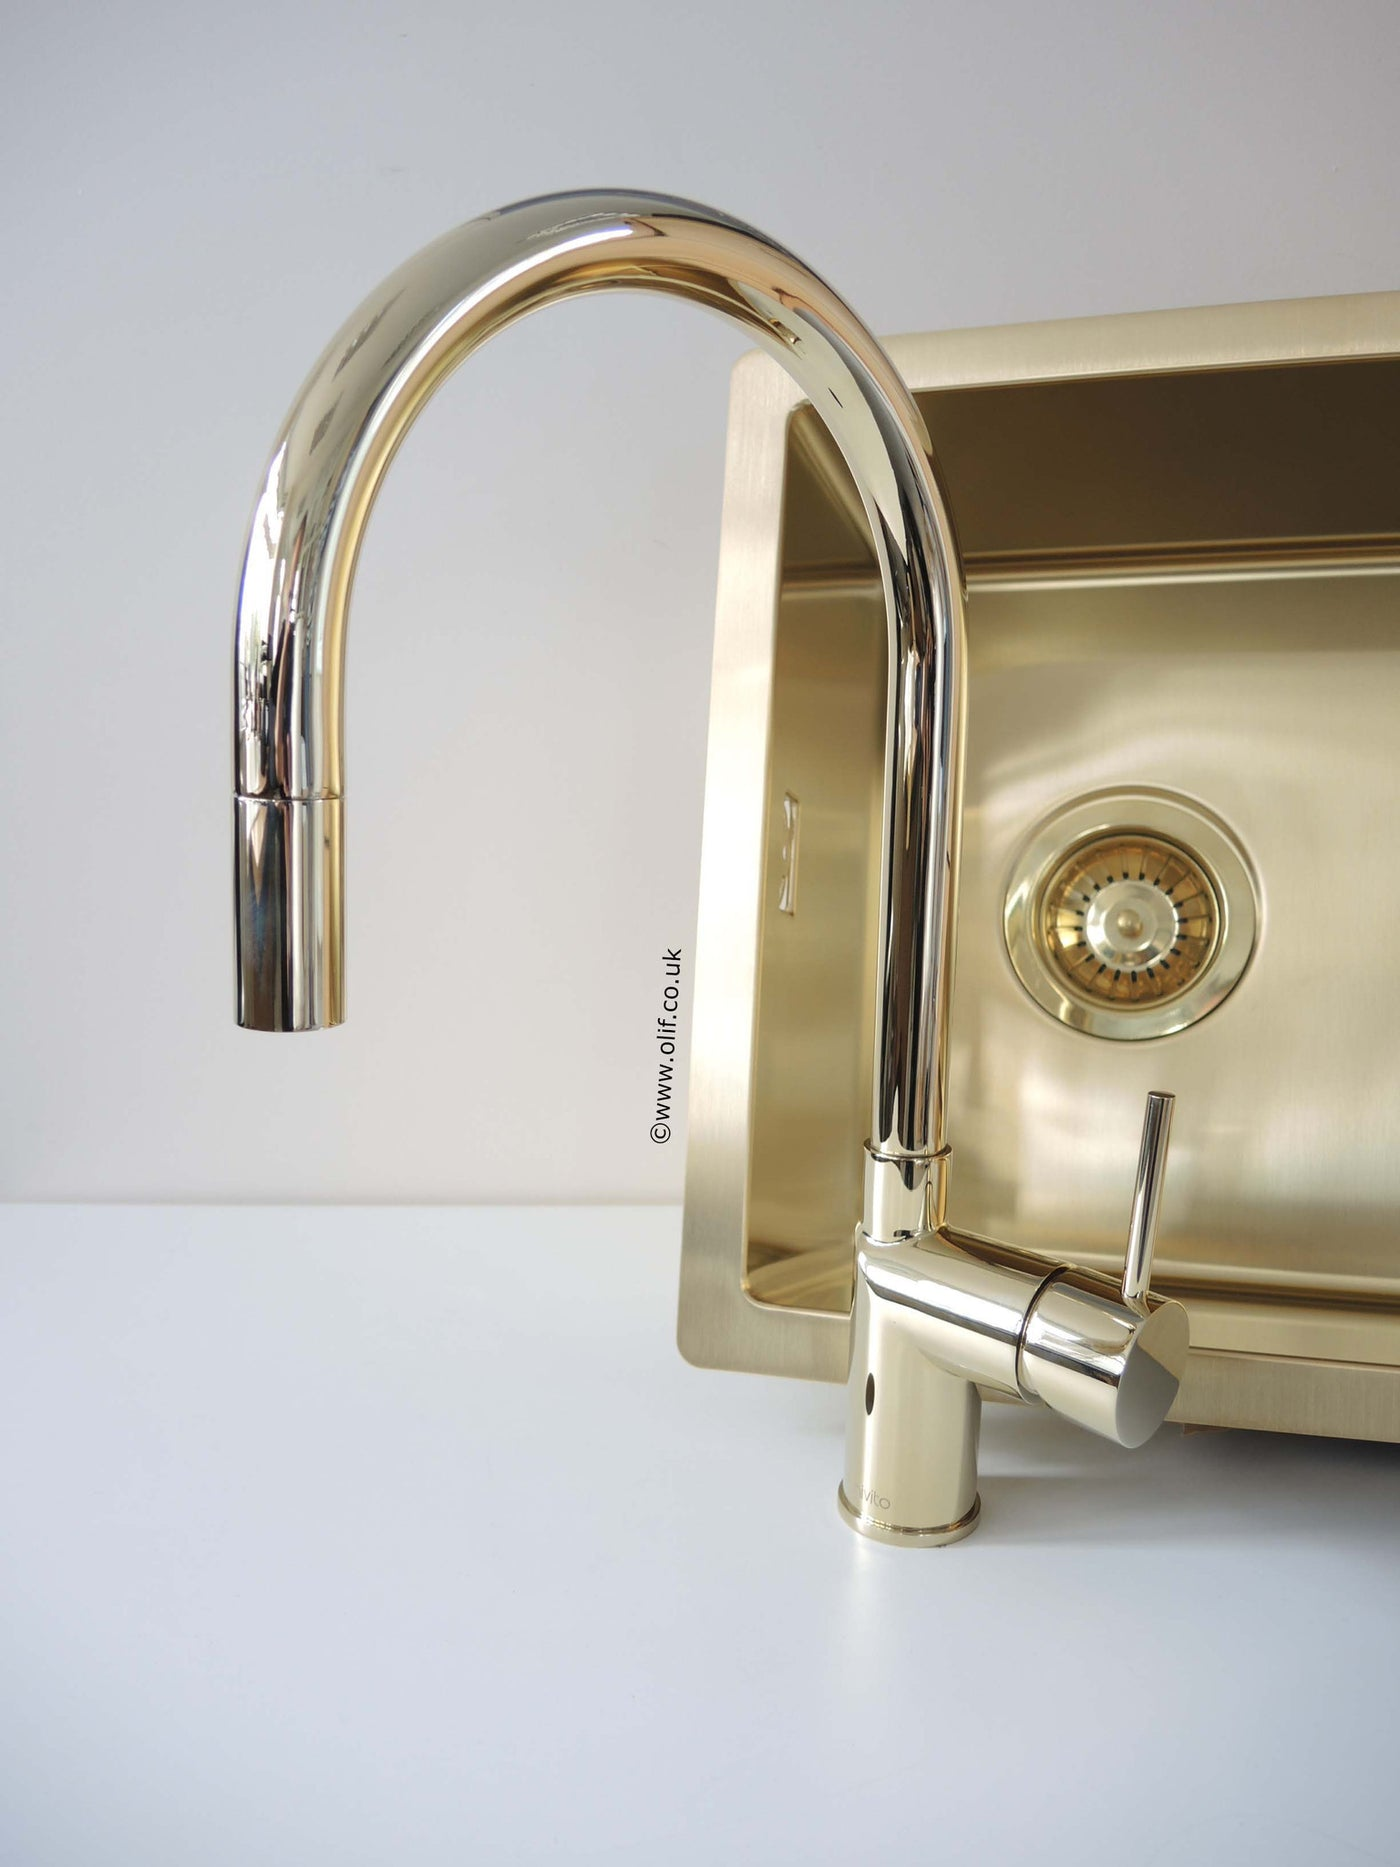 Gold /Brass pull-out kitchen mixer tap, stainless steel, UK   Nivito ...